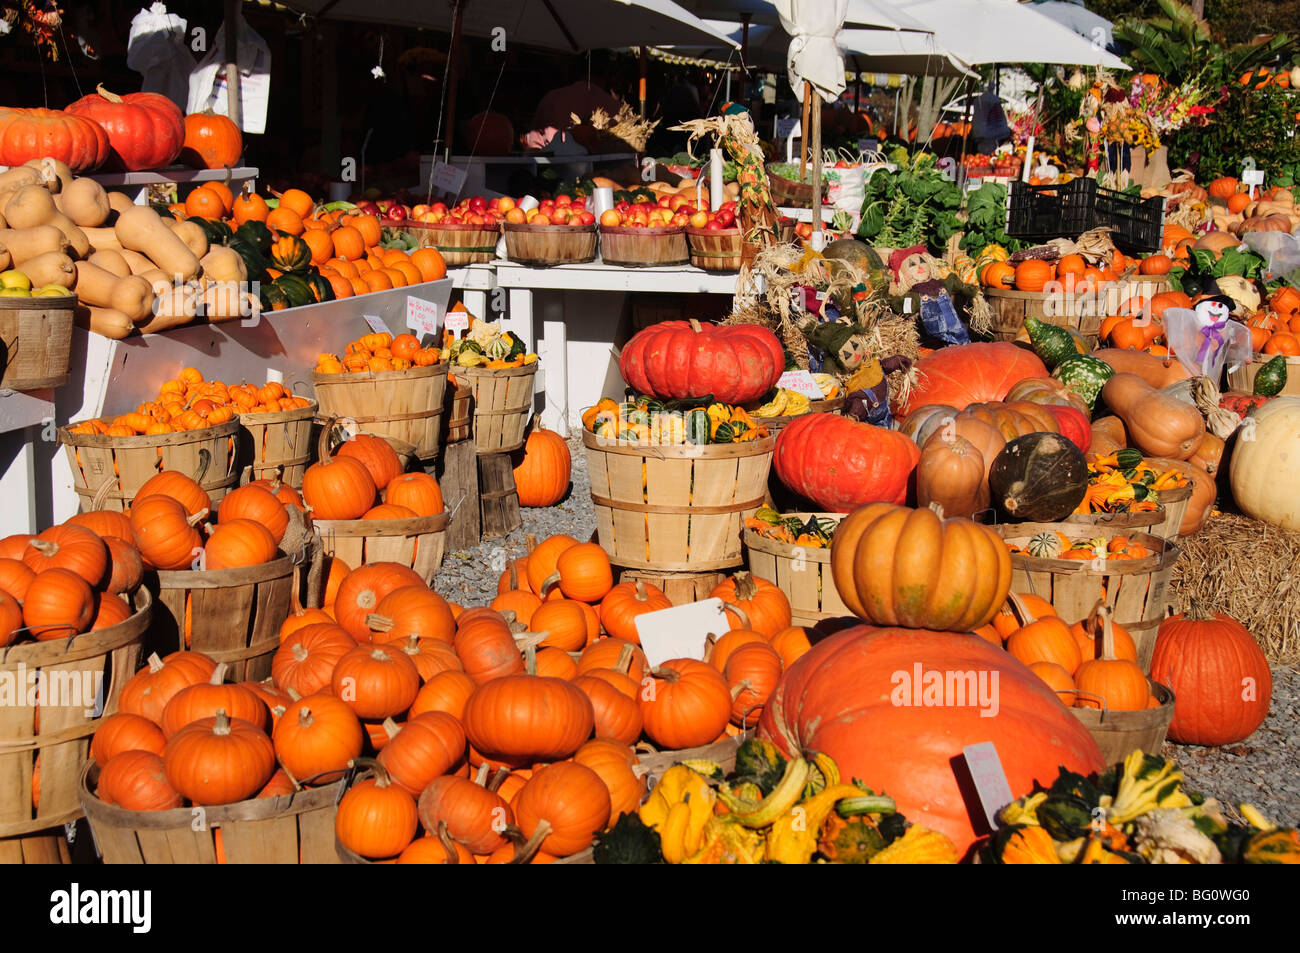 Pumpkins, The Hamptons, Long Island, New York State, United States of America, North America - Stock Image